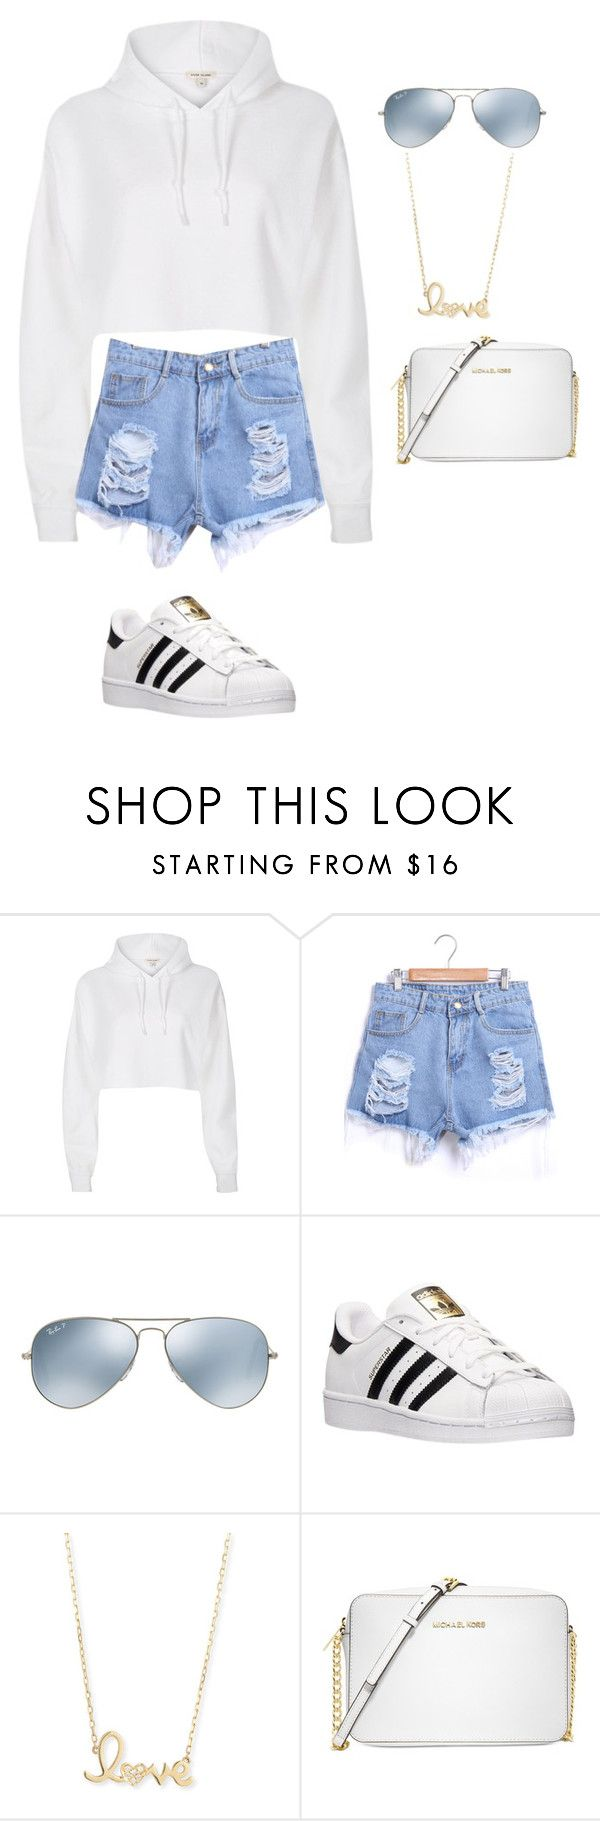 Untitled #35 by jaycutie2-1 ❤ liked on Polyvore featuring River Island, Ray-Ban, adidas, Sydney Evan and Michael Kors